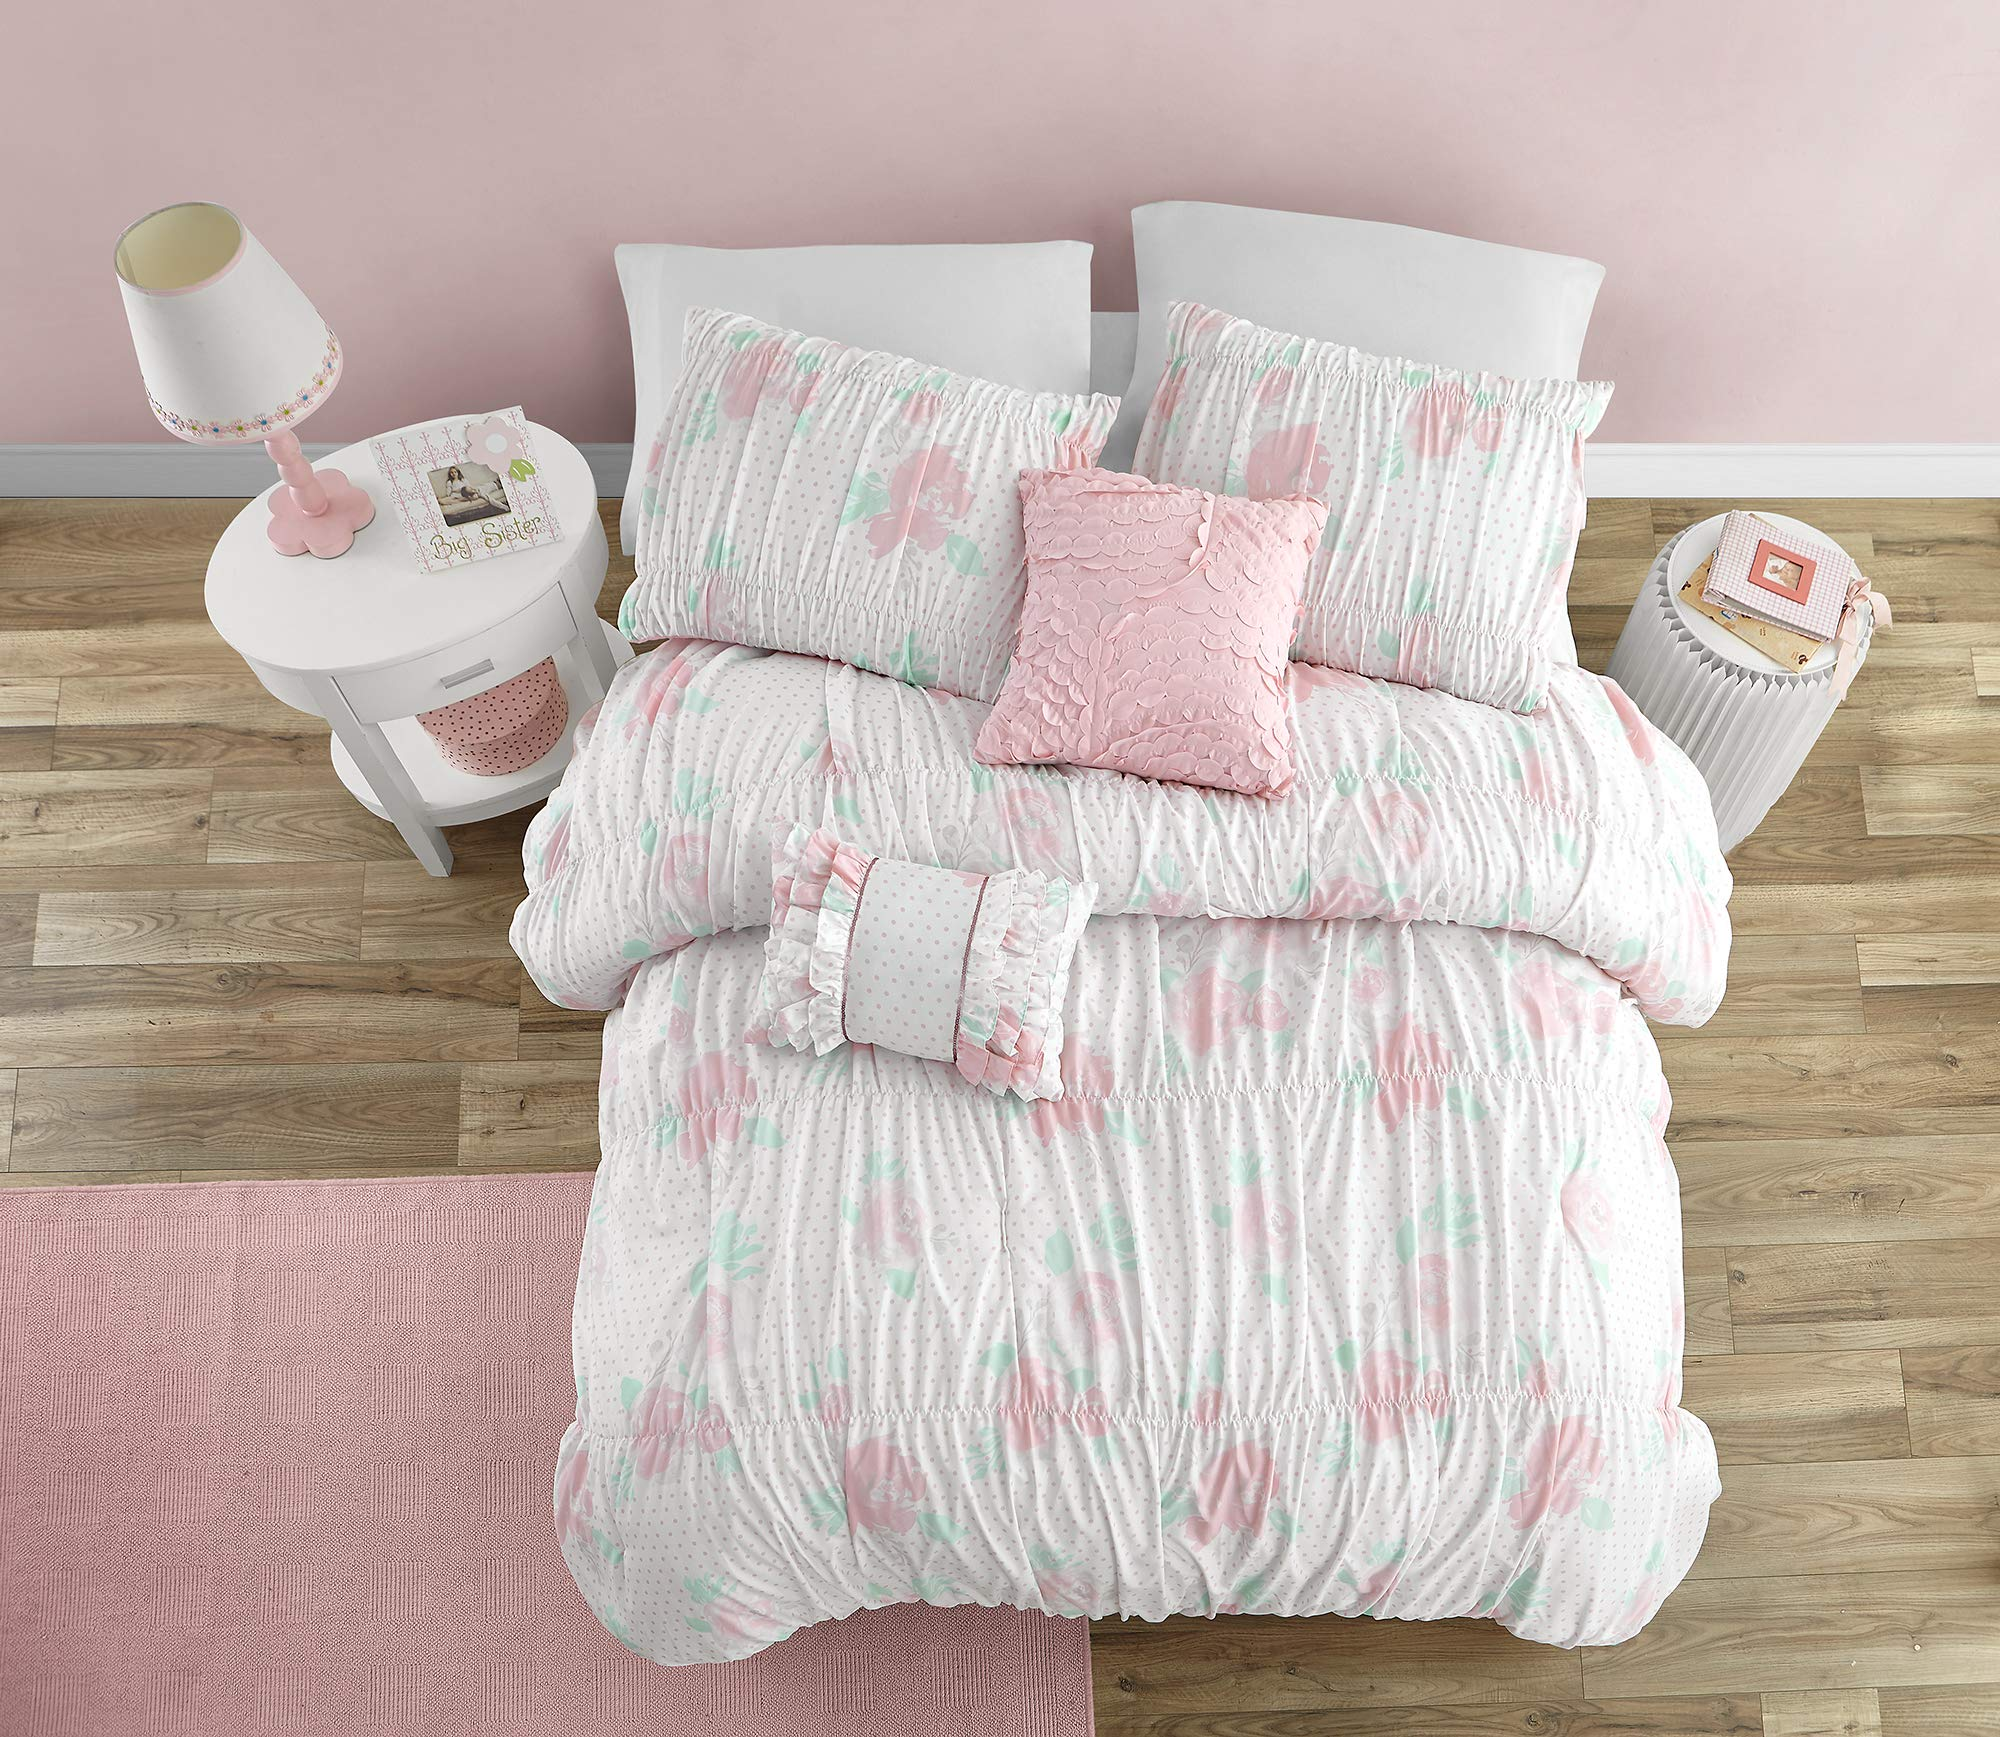 Mytex Tabitha Pretty Floral 4-Piece Comforter set with Smocking and Ruffled texture, Girls, Teen bedding, Shabby Chic, White/Pink/Aqua, Full